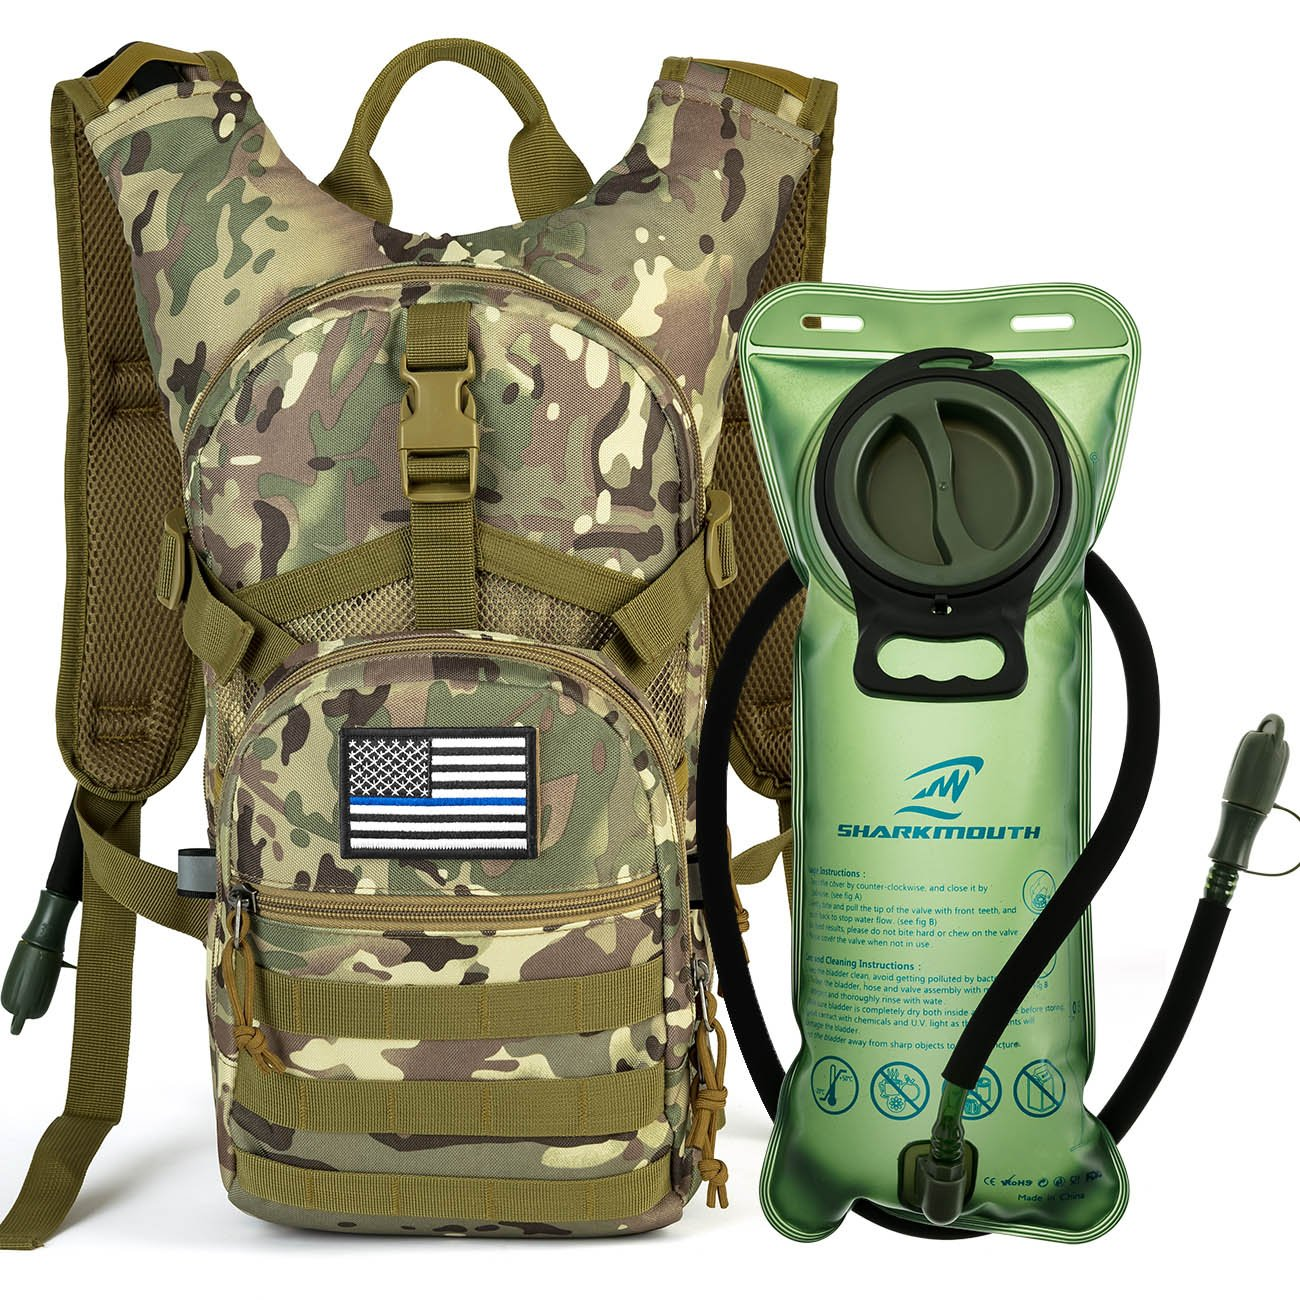 Sharkmouth Tactical Molle Hydration Packバックパック900d with 2l leak-proof水膀胱、液体Keep Cool For Up To 4時間、アウトドアDaypack forサイクリング、ハイキング、ランニング、登山、狩猟(cptan) B07C4Y64H2